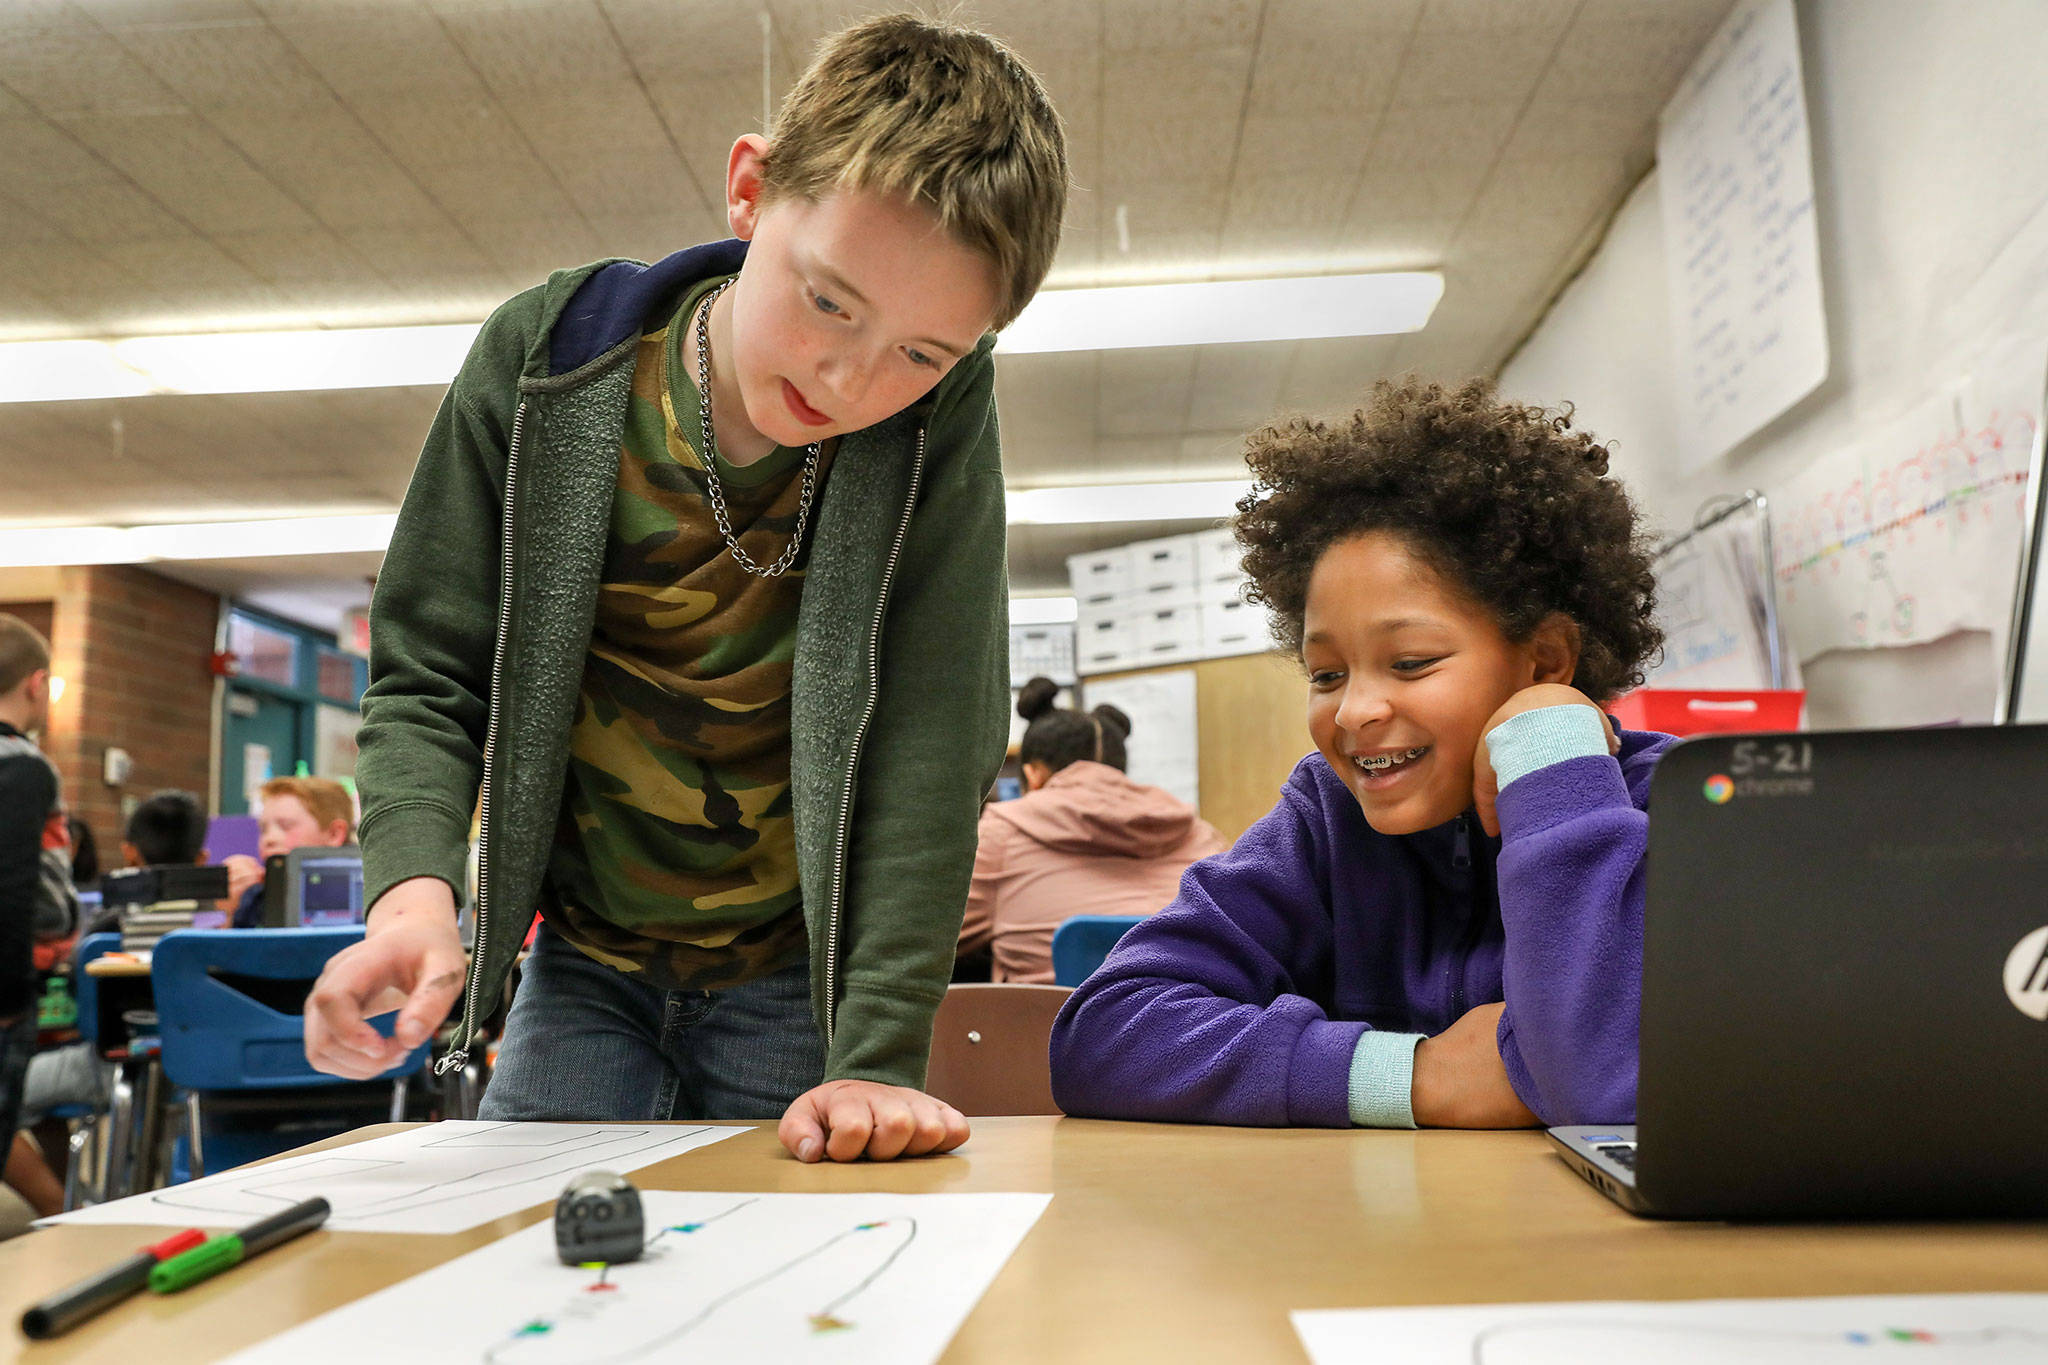 Gavin Dyche (left) and Ayla Martin, third grade students at Pinewood Elementary School in Marysville, learn to direct a robot though code using a Chromebook on May 15, 2018. (Lizz Giordano / The Herald)